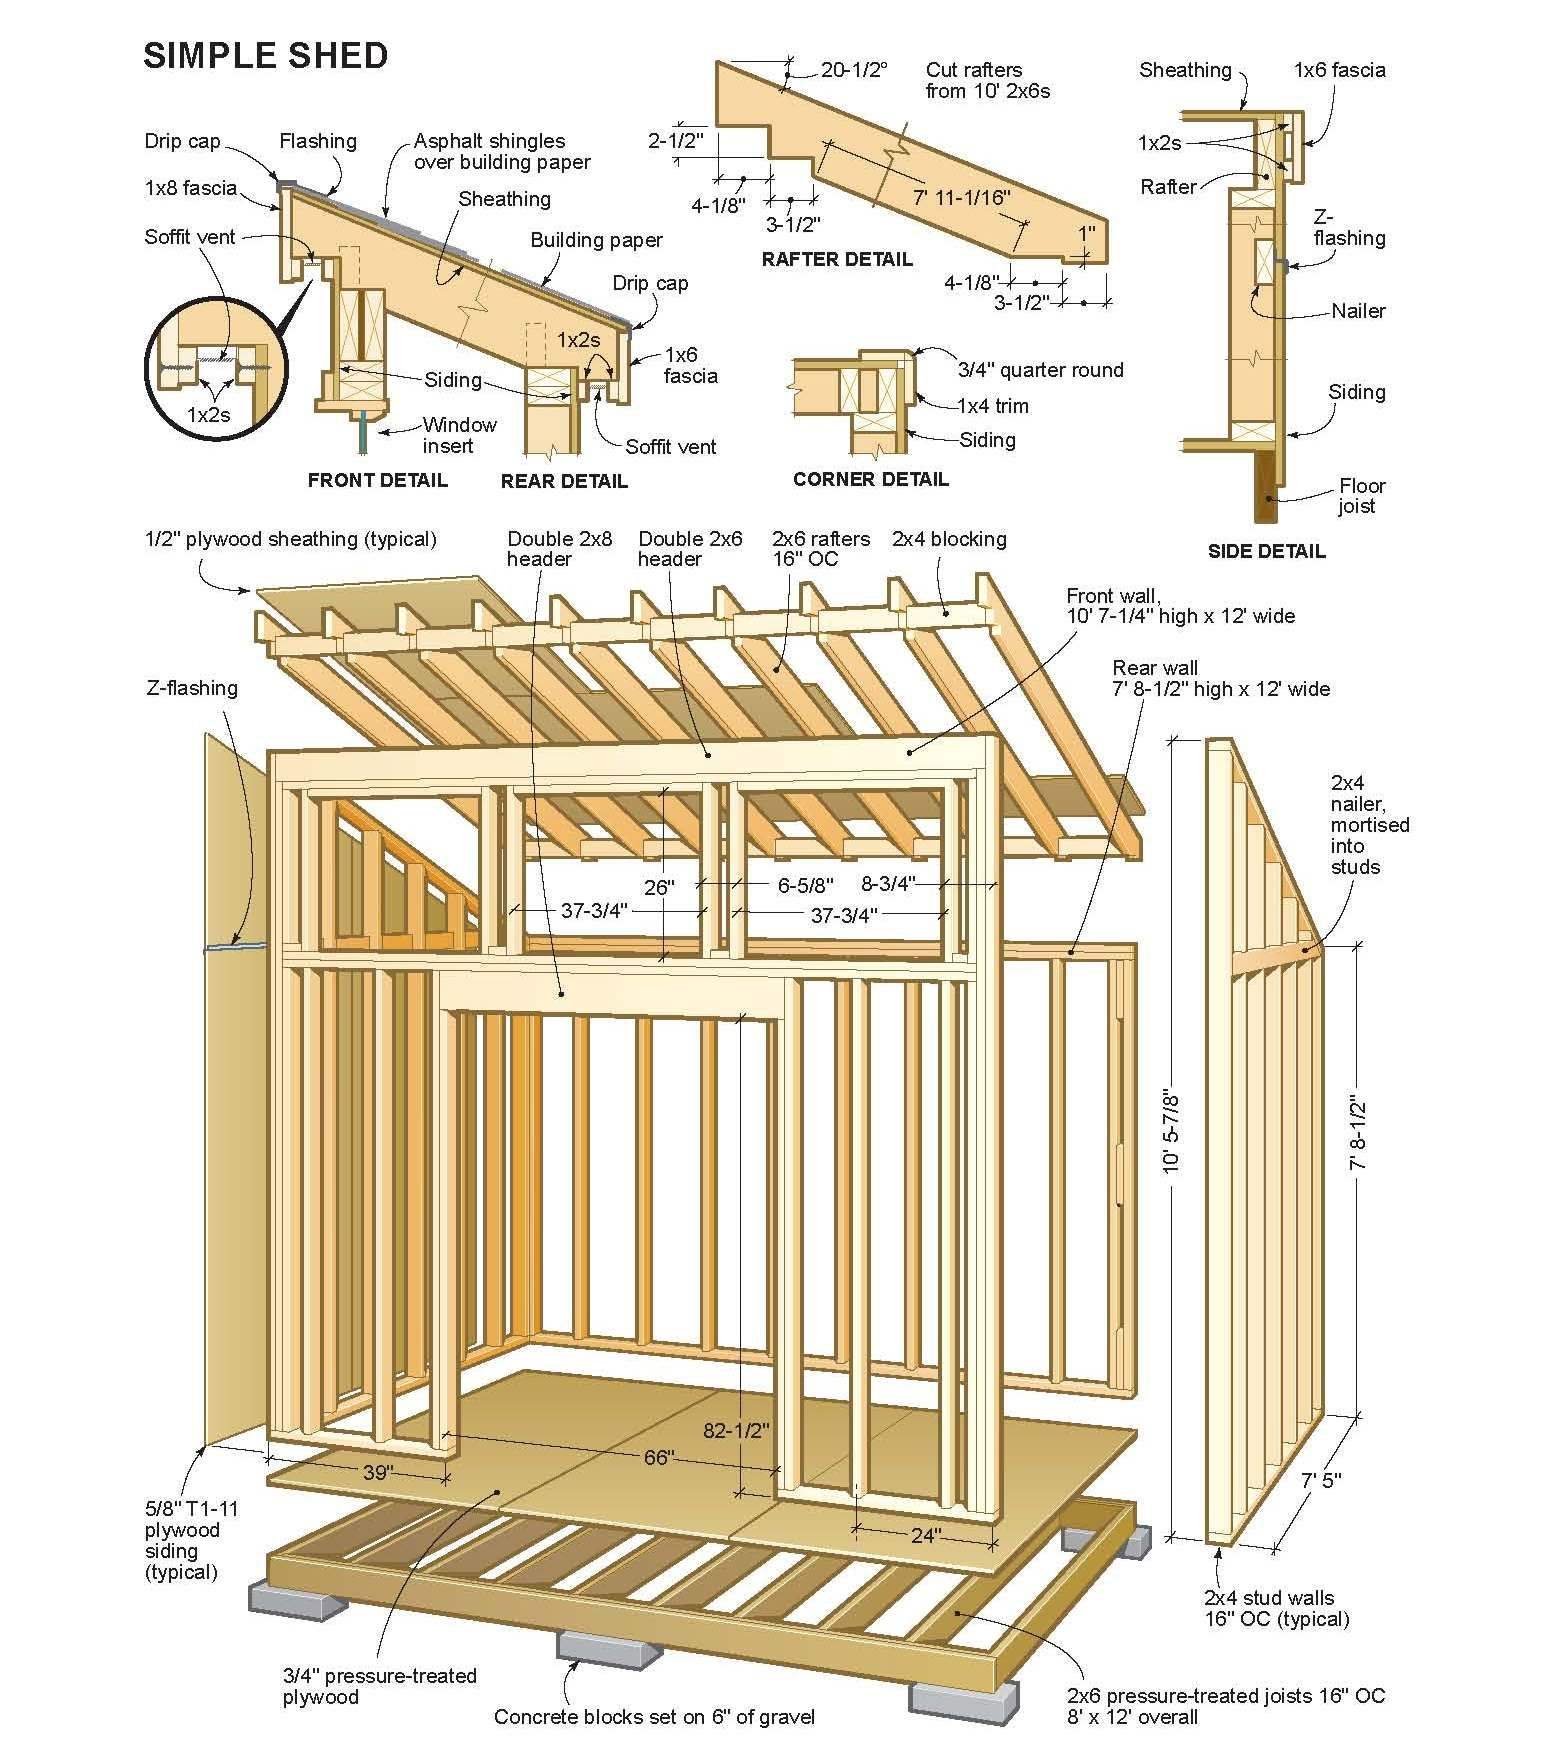 17 Best ideas about Storage Building Plans on Pinterest Diy shed